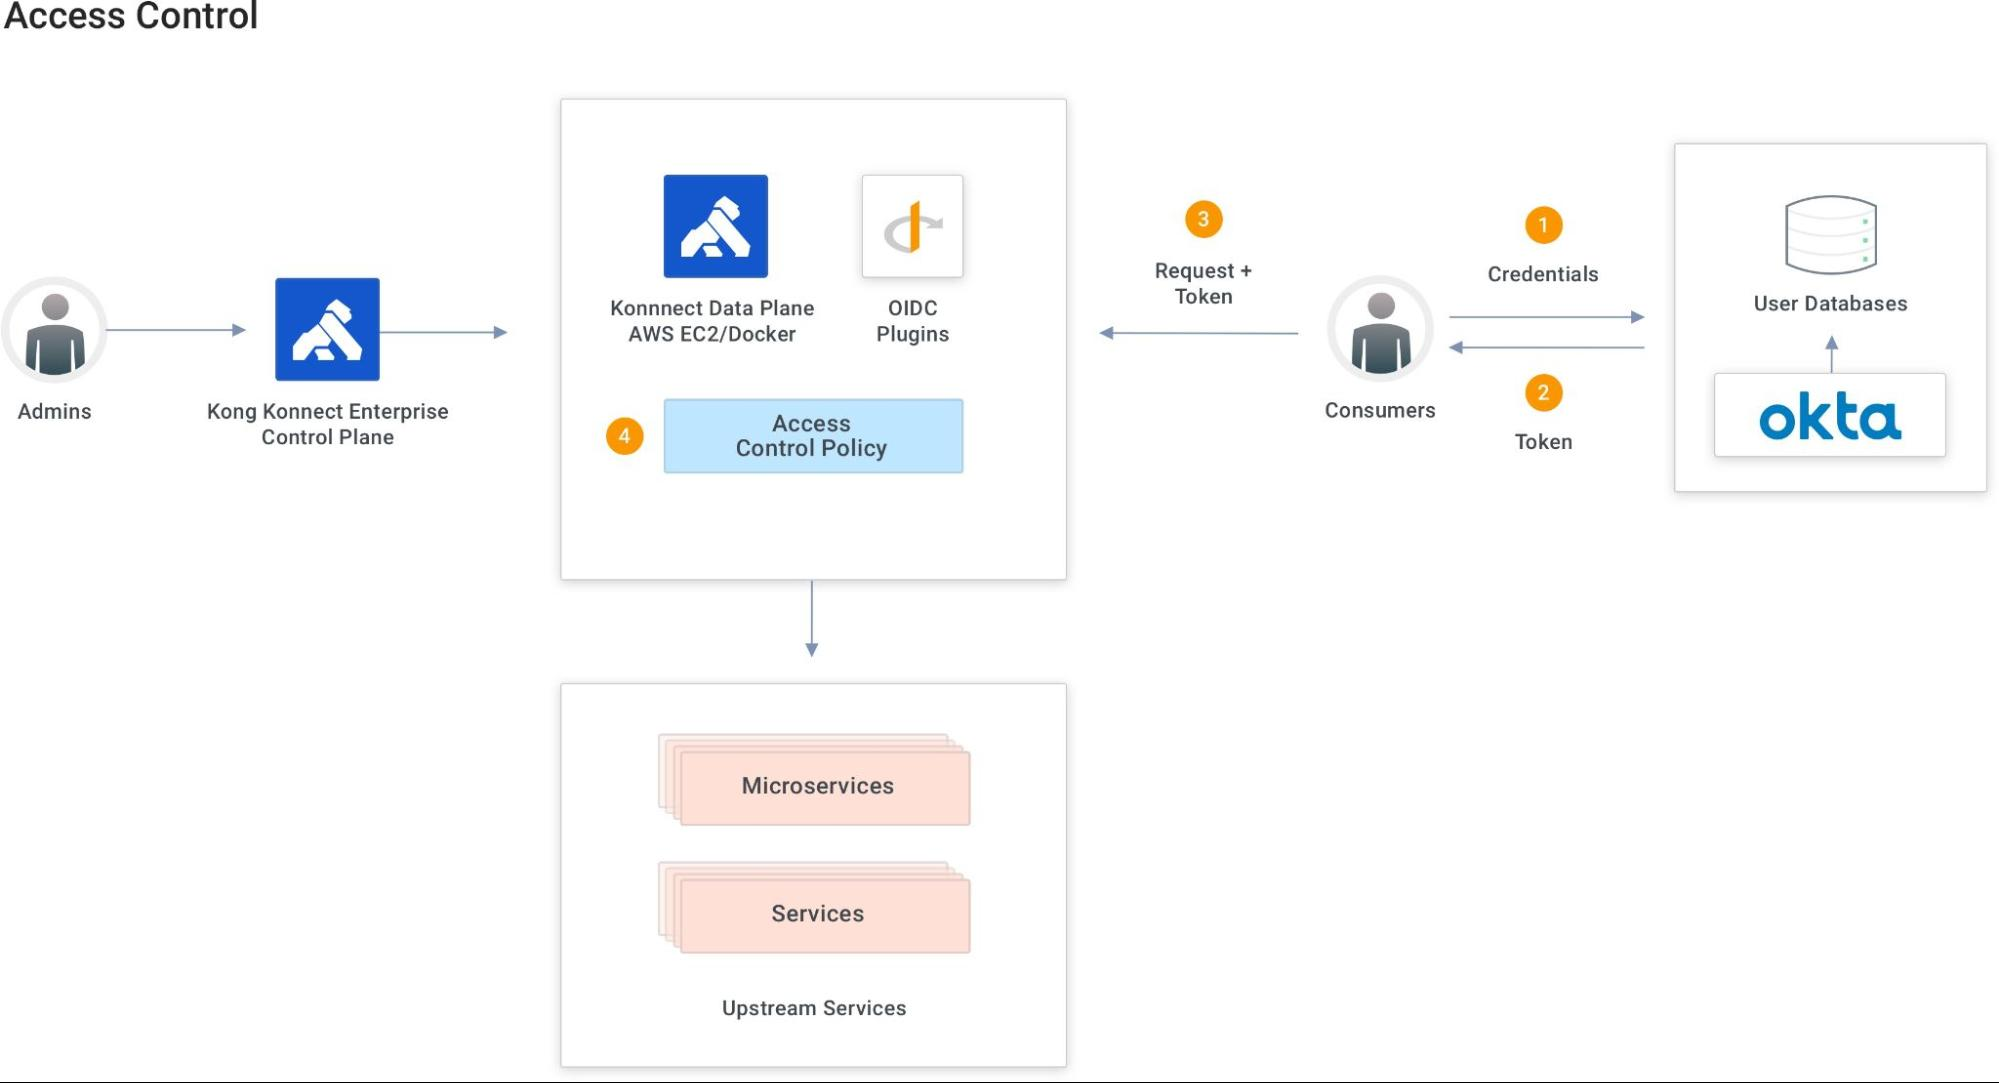 Okta and Kong Konnect Access Control Policies Architecture